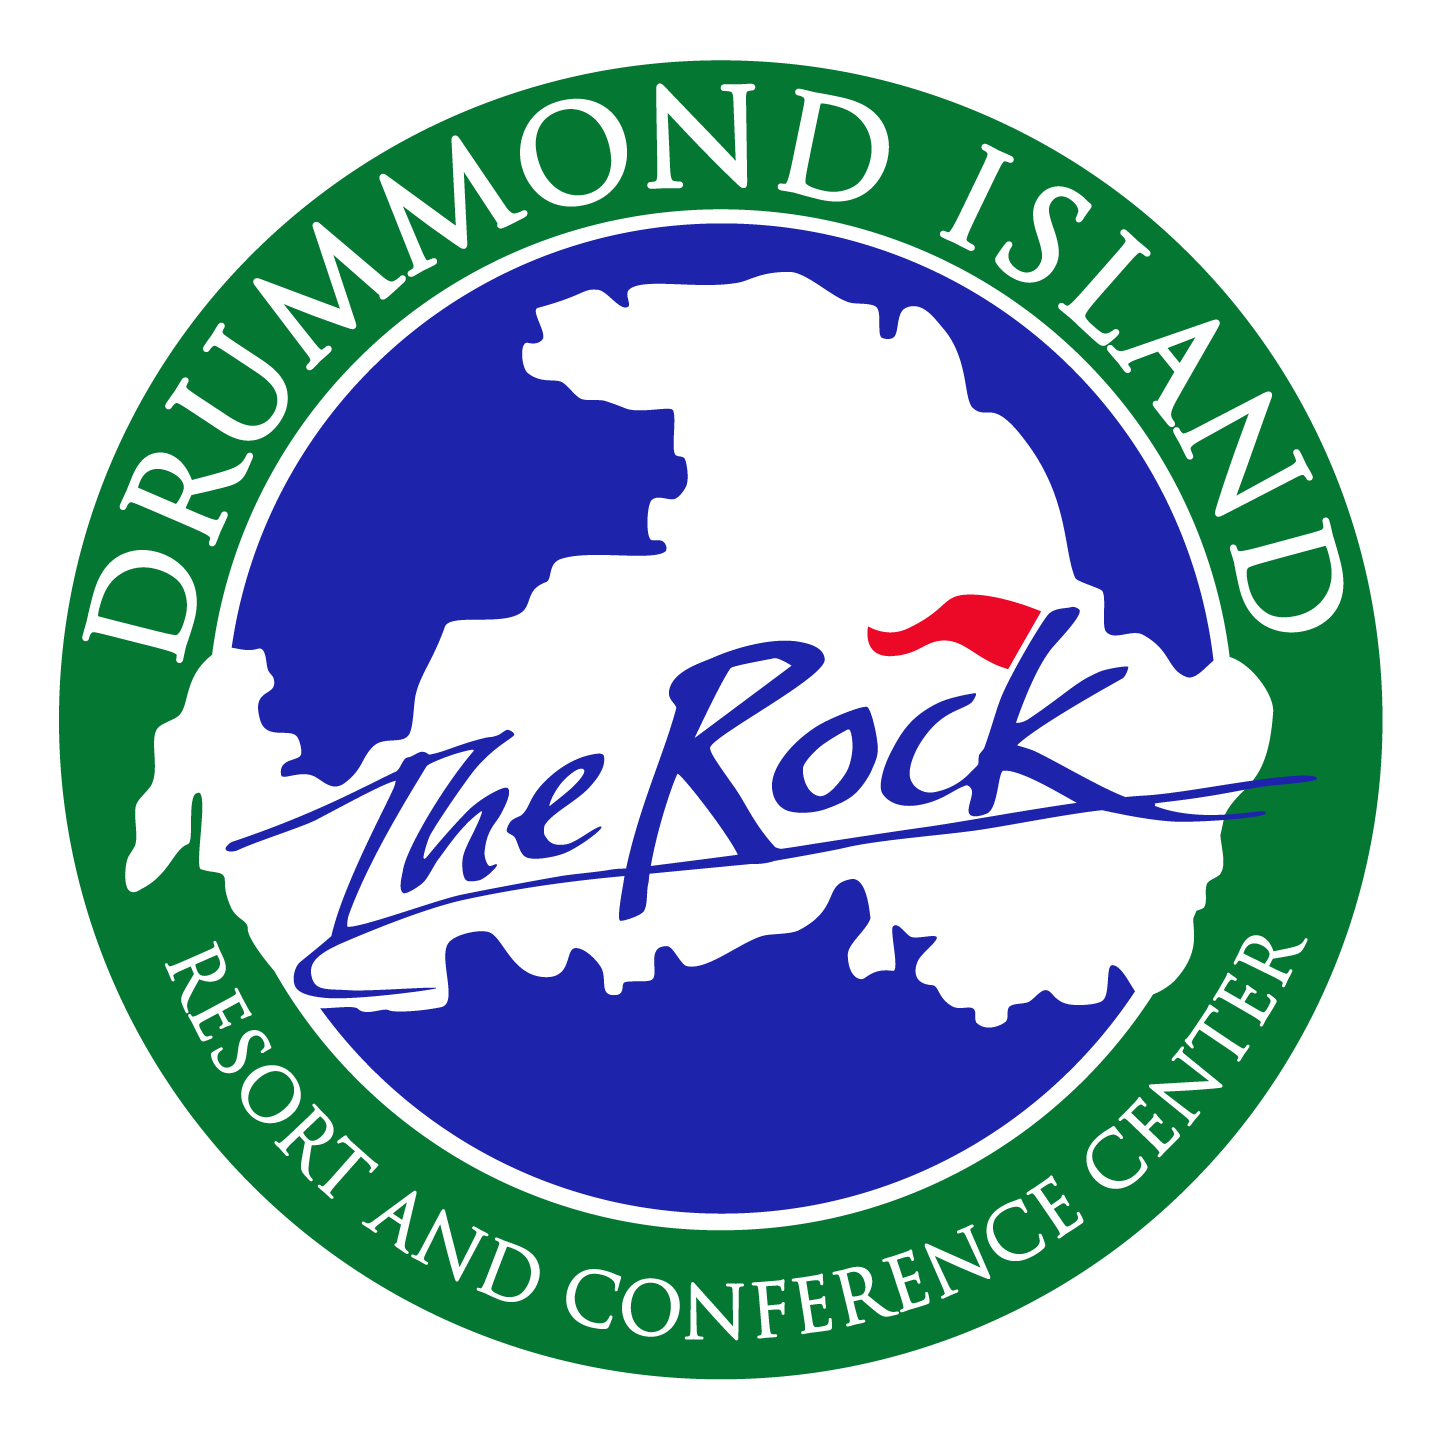 Logo for Drummond Island Resort & Conference Center